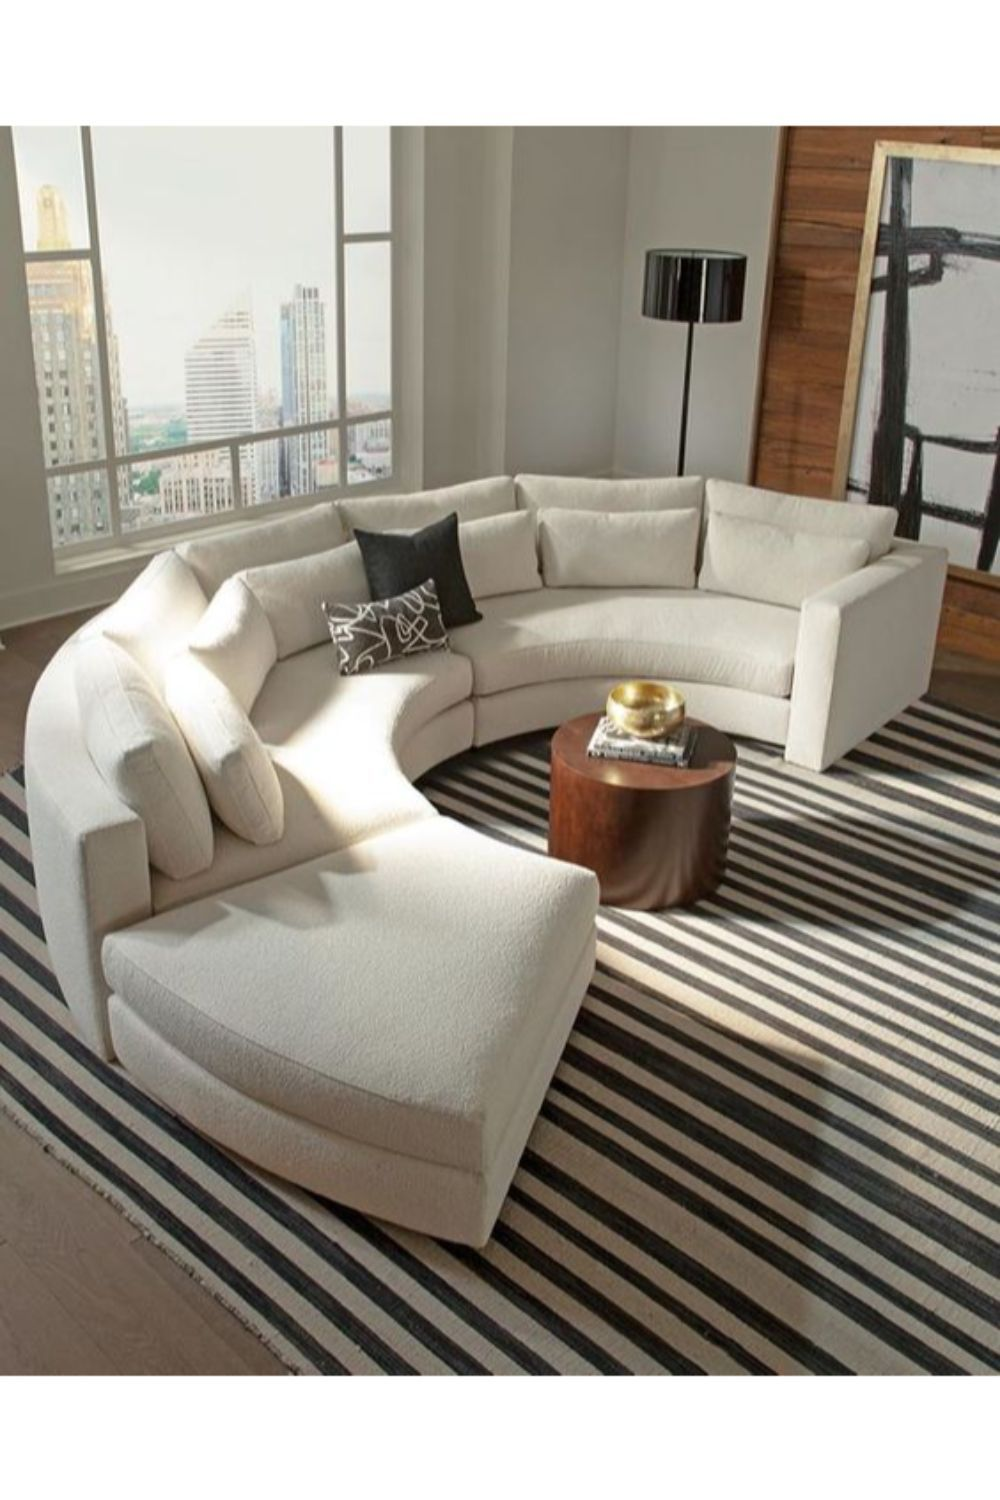 The Best Modern Sofas For The Next Season In 2021 Modern Sofa Sectional Sectional Sofas Living Room Sectional Sofa